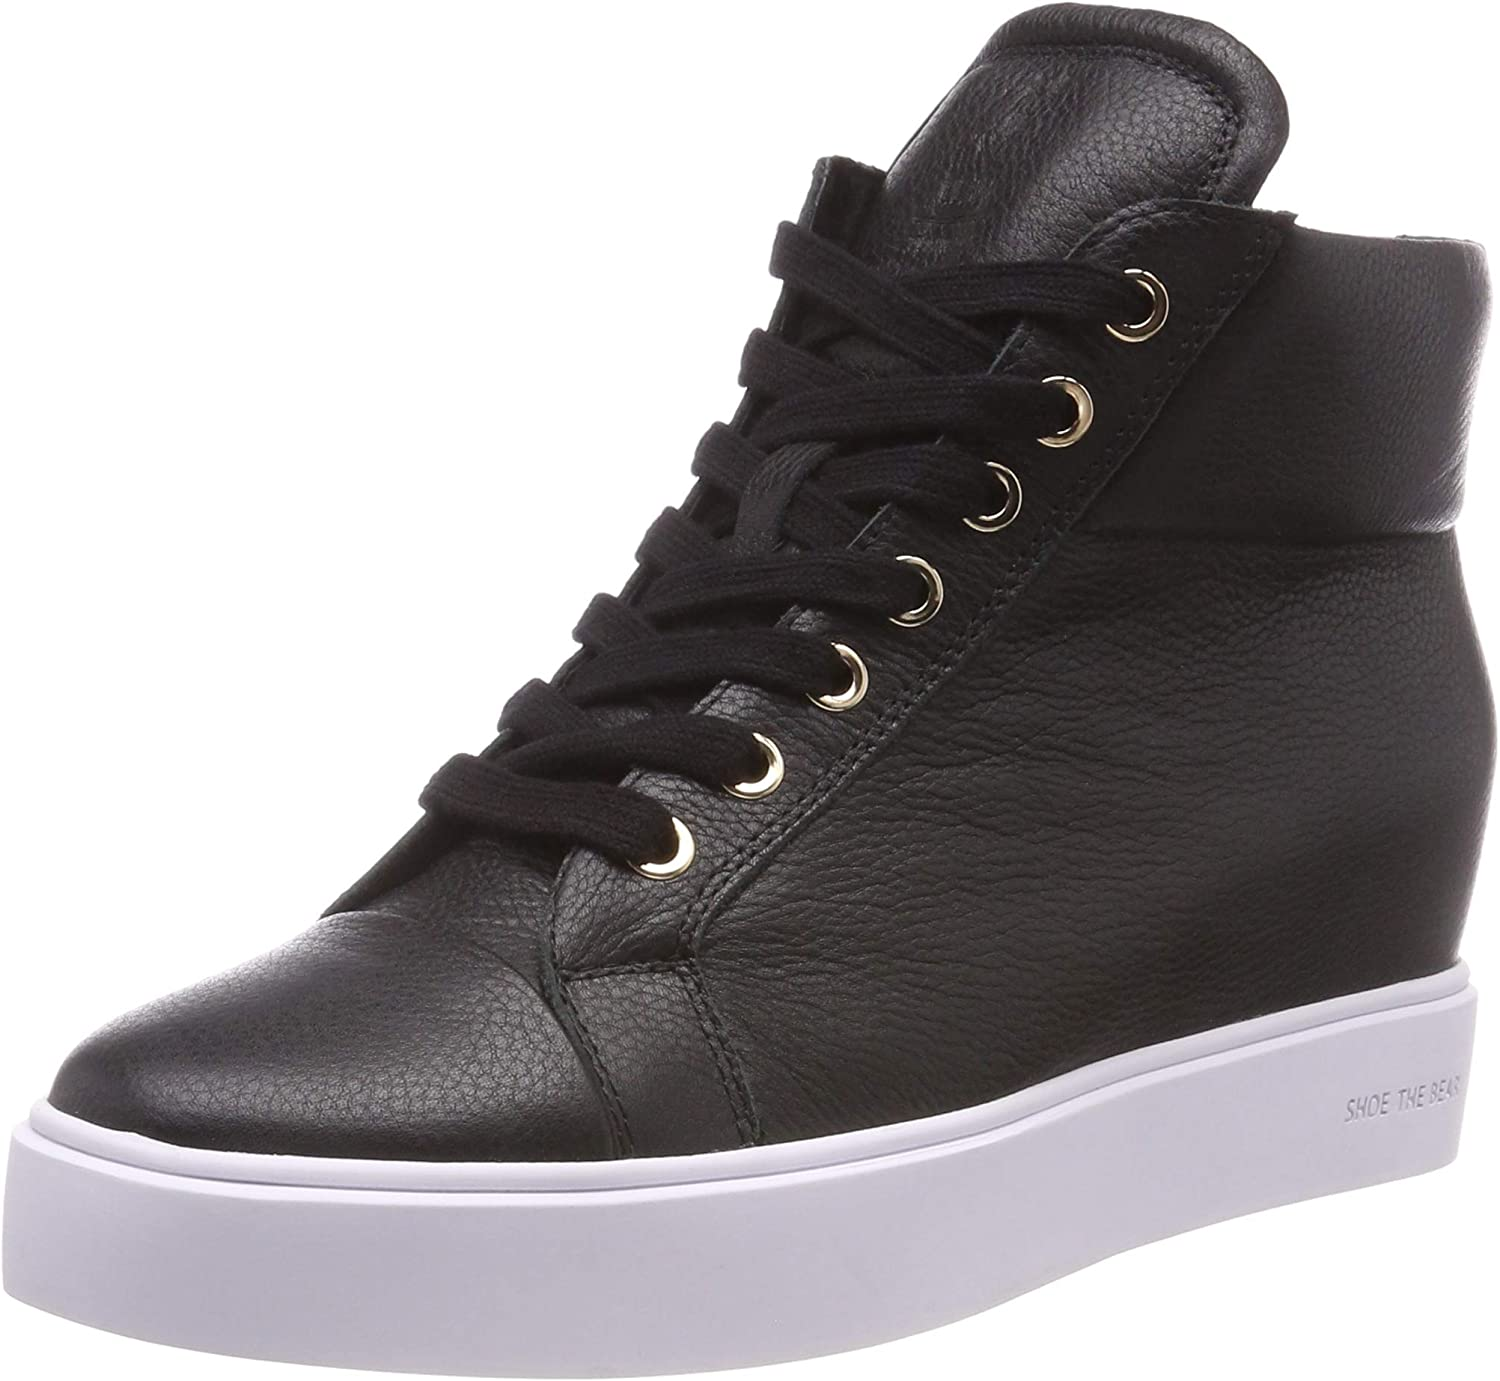 SHOE THE BEAR Women's Ava High Top in Black